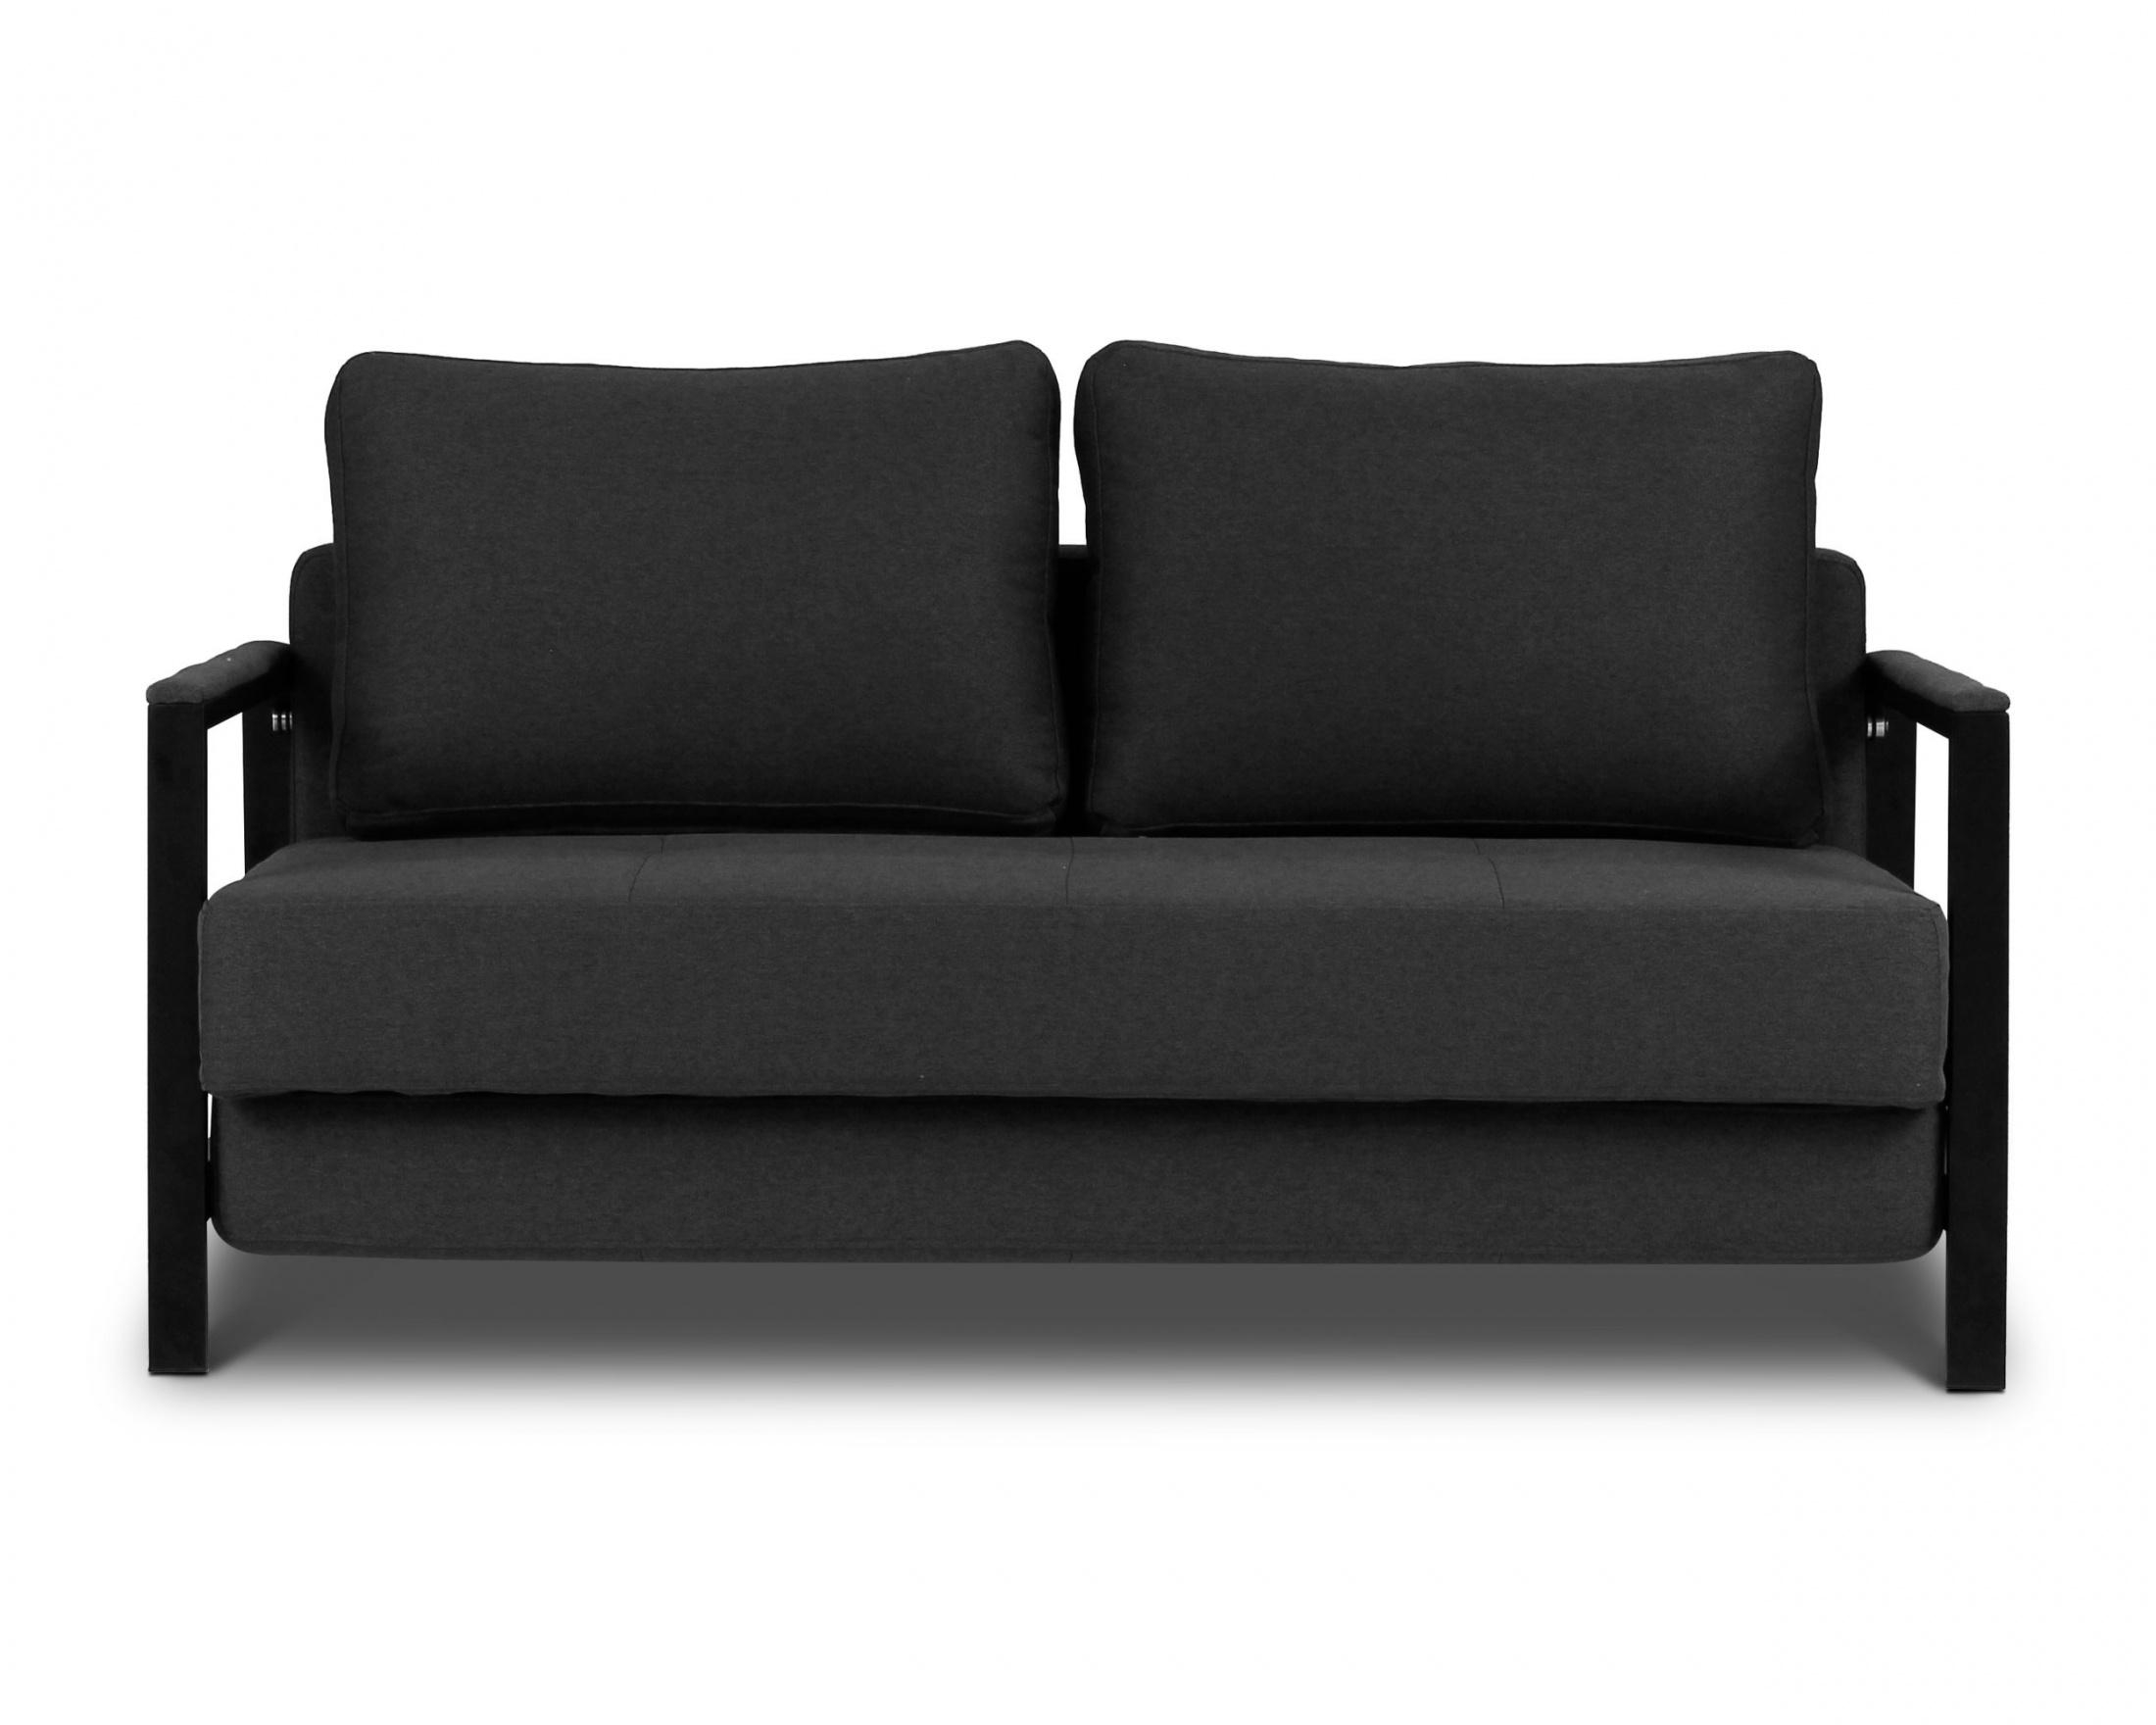 20 best ideas black 2 seater sofas sofa ideas. Black Bedroom Furniture Sets. Home Design Ideas